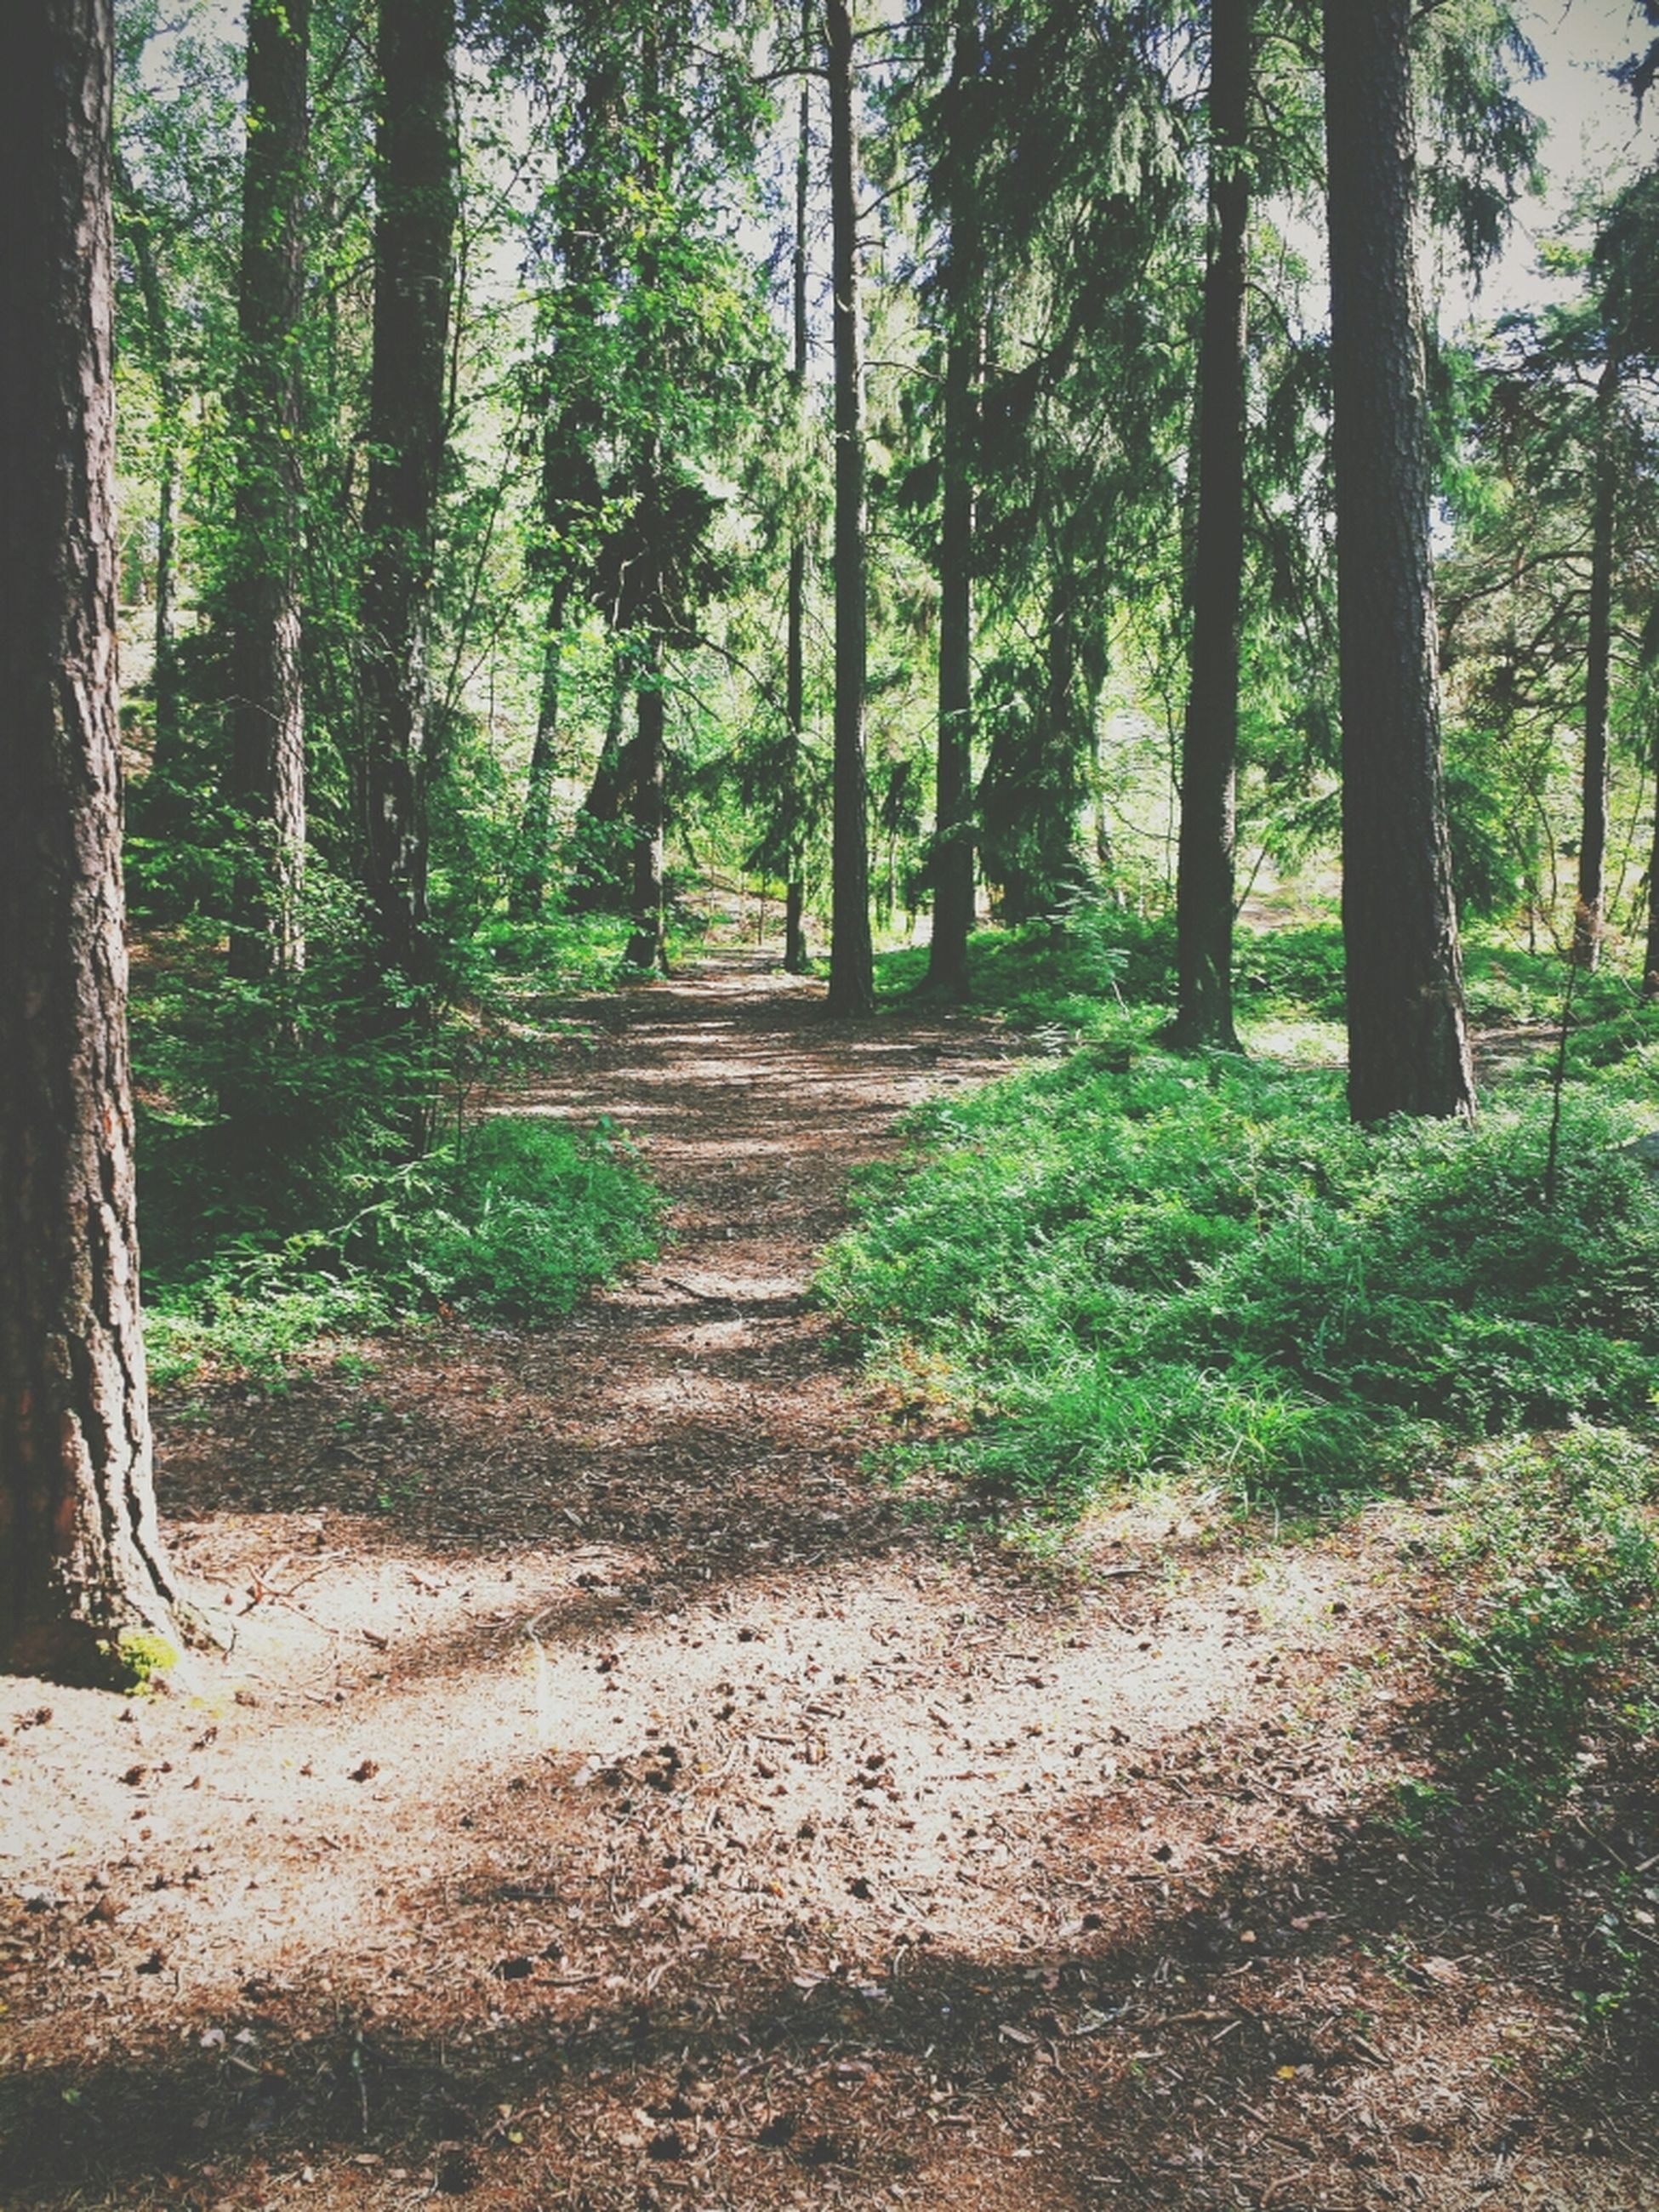 tree, tree trunk, forest, tranquility, growth, the way forward, tranquil scene, nature, beauty in nature, woodland, scenics, green color, footpath, sunlight, branch, shadow, non-urban scene, day, outdoors, landscape